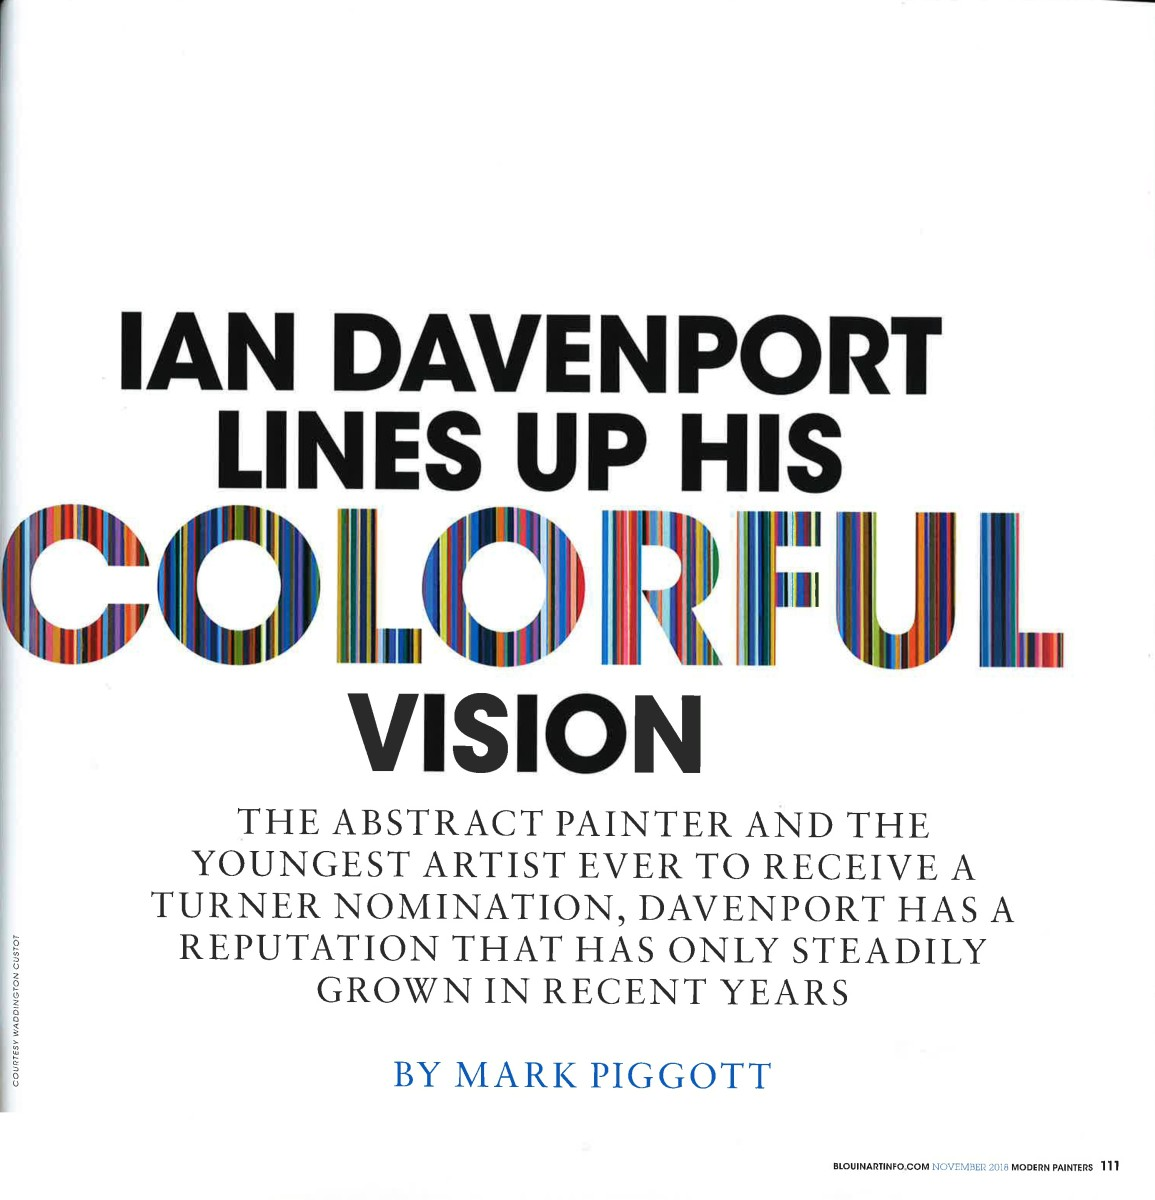 Ian Davenport Lines Up his Colourful Vision Part 1